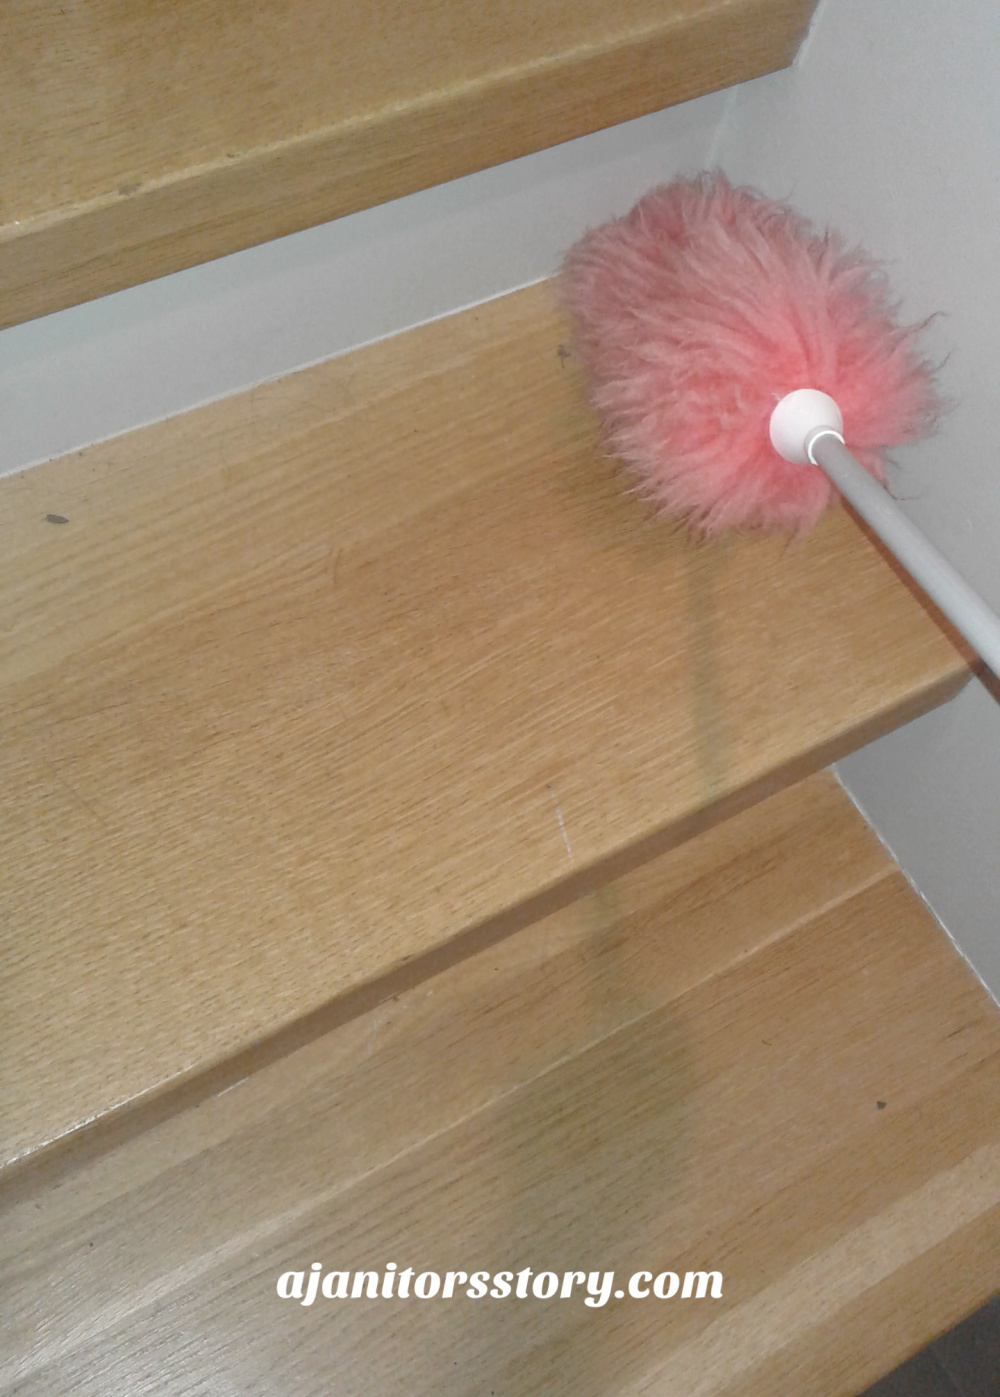 Pink duster cleaning wood steps. Best cleaning products for housekeeping. Traditional, natural, and non toxic cleaning supplies list.